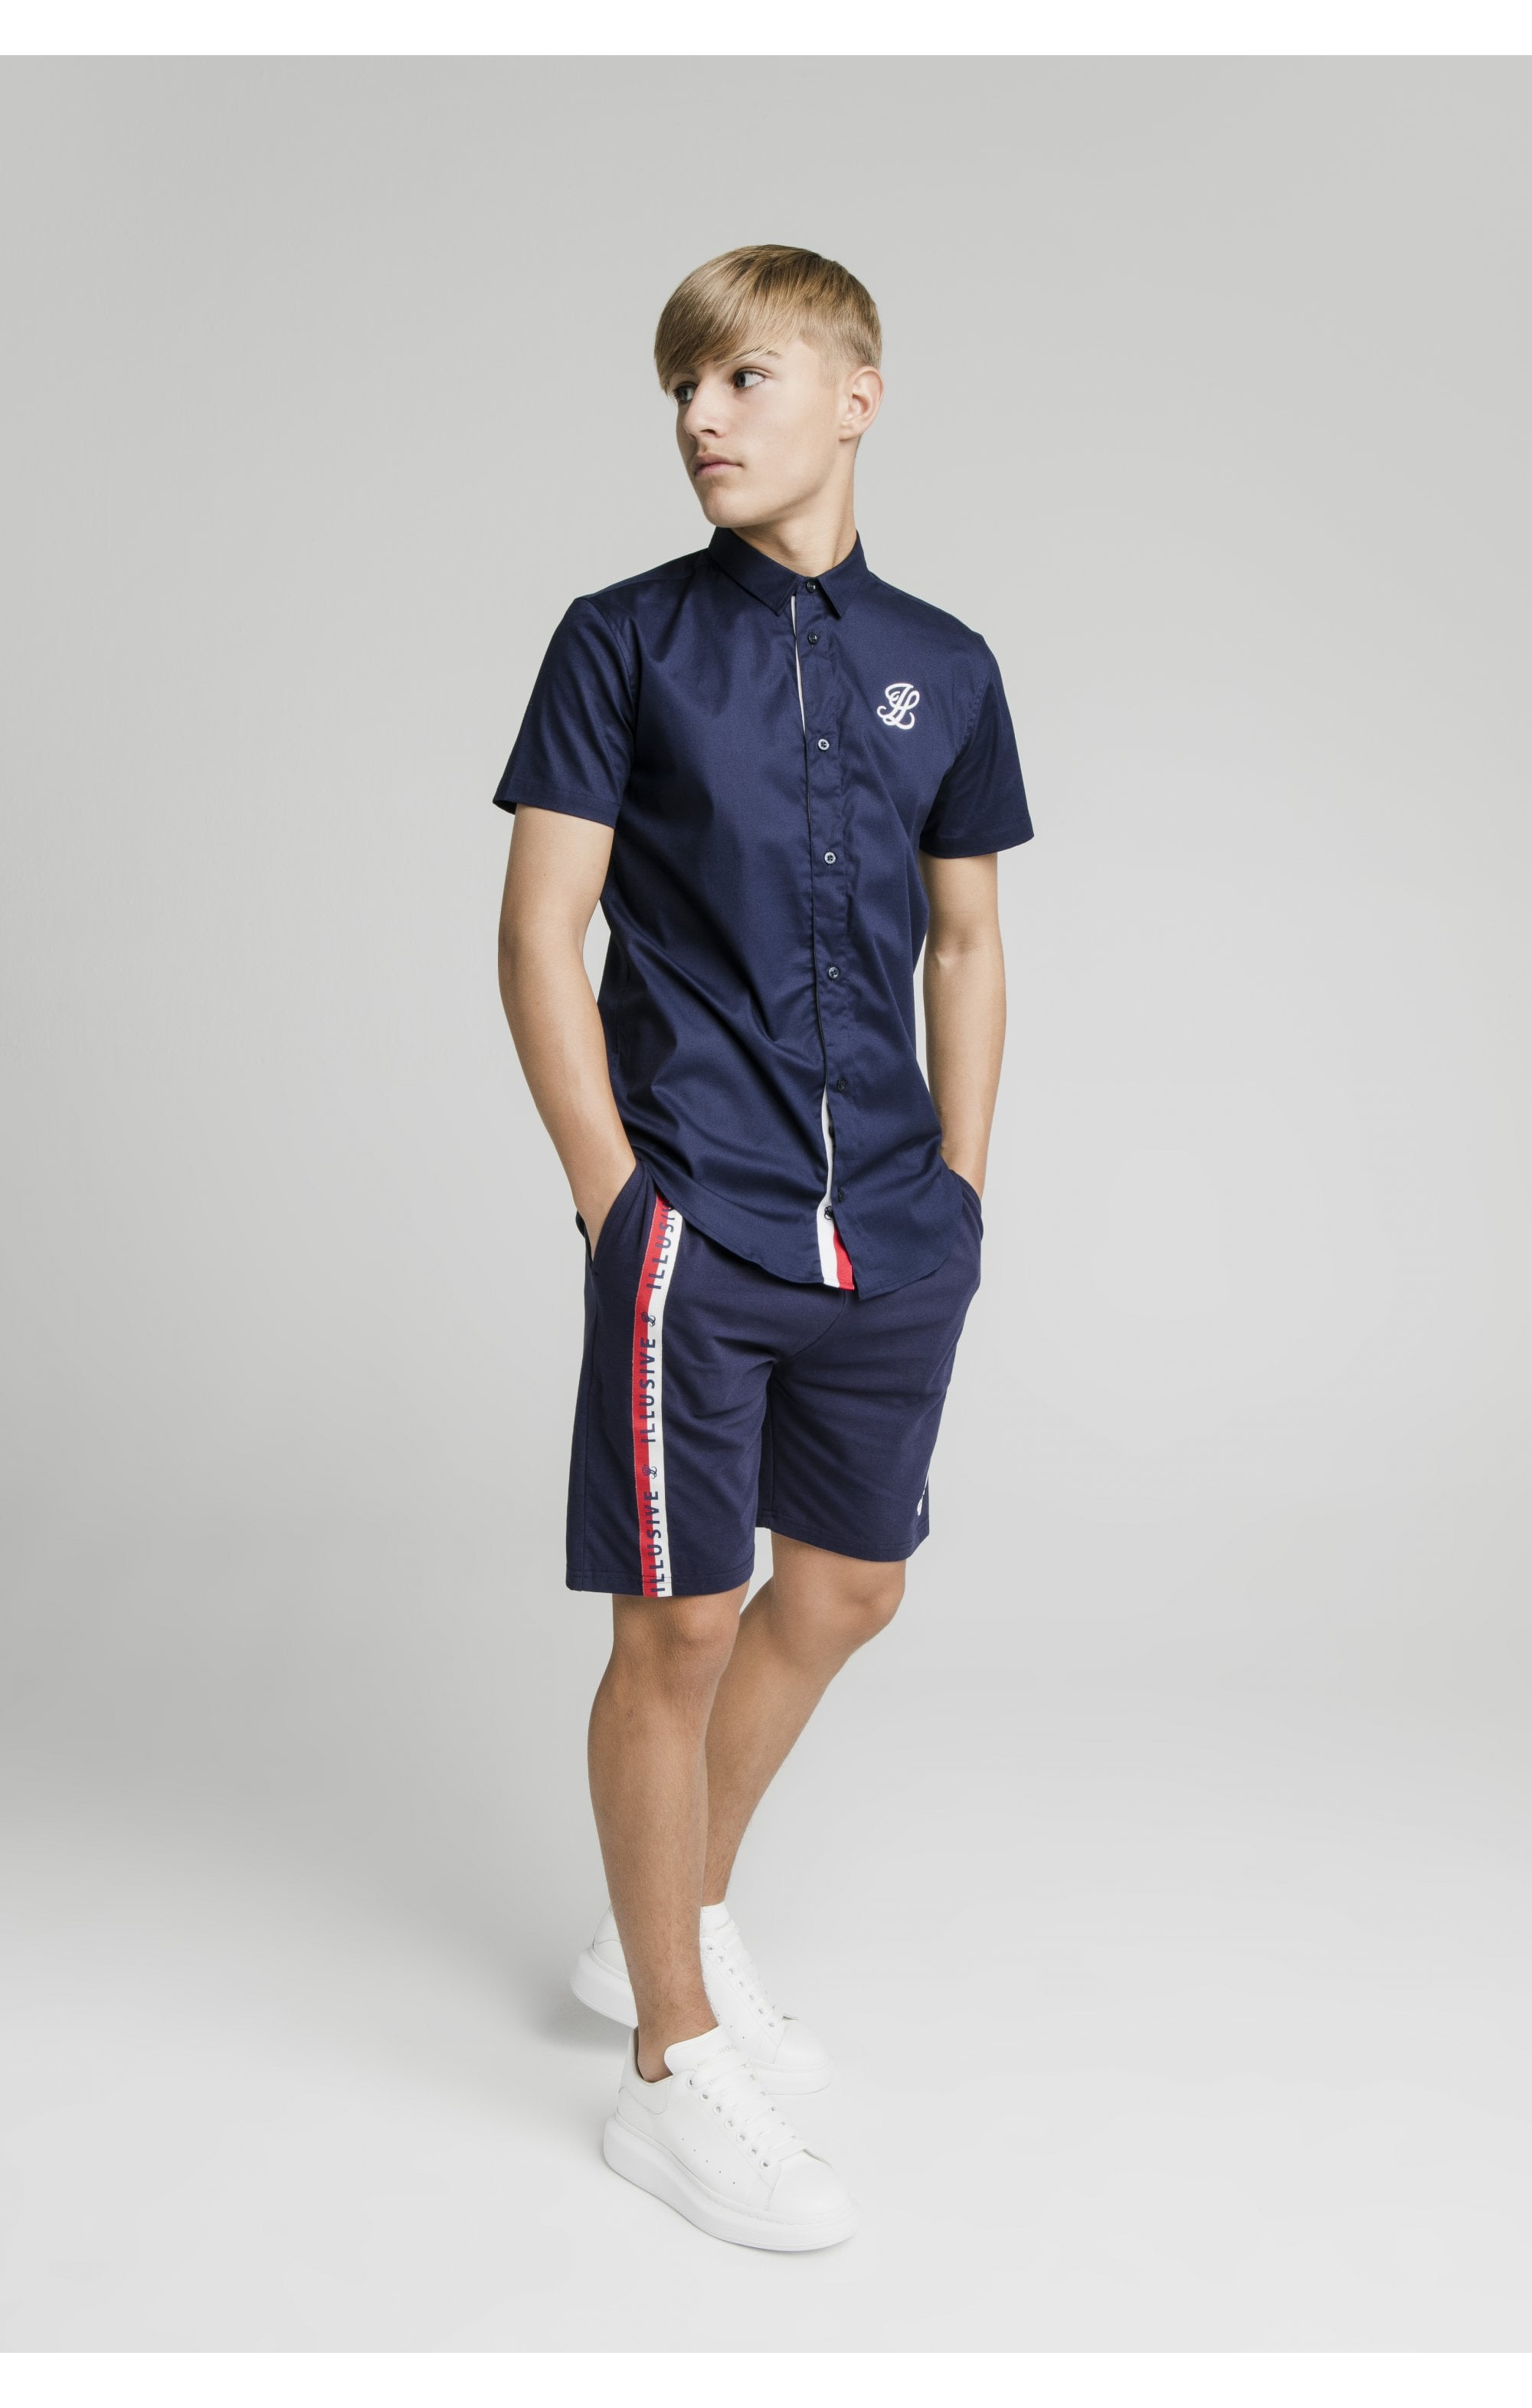 Illusive London S/S Grandad Shirt - Navy (3)